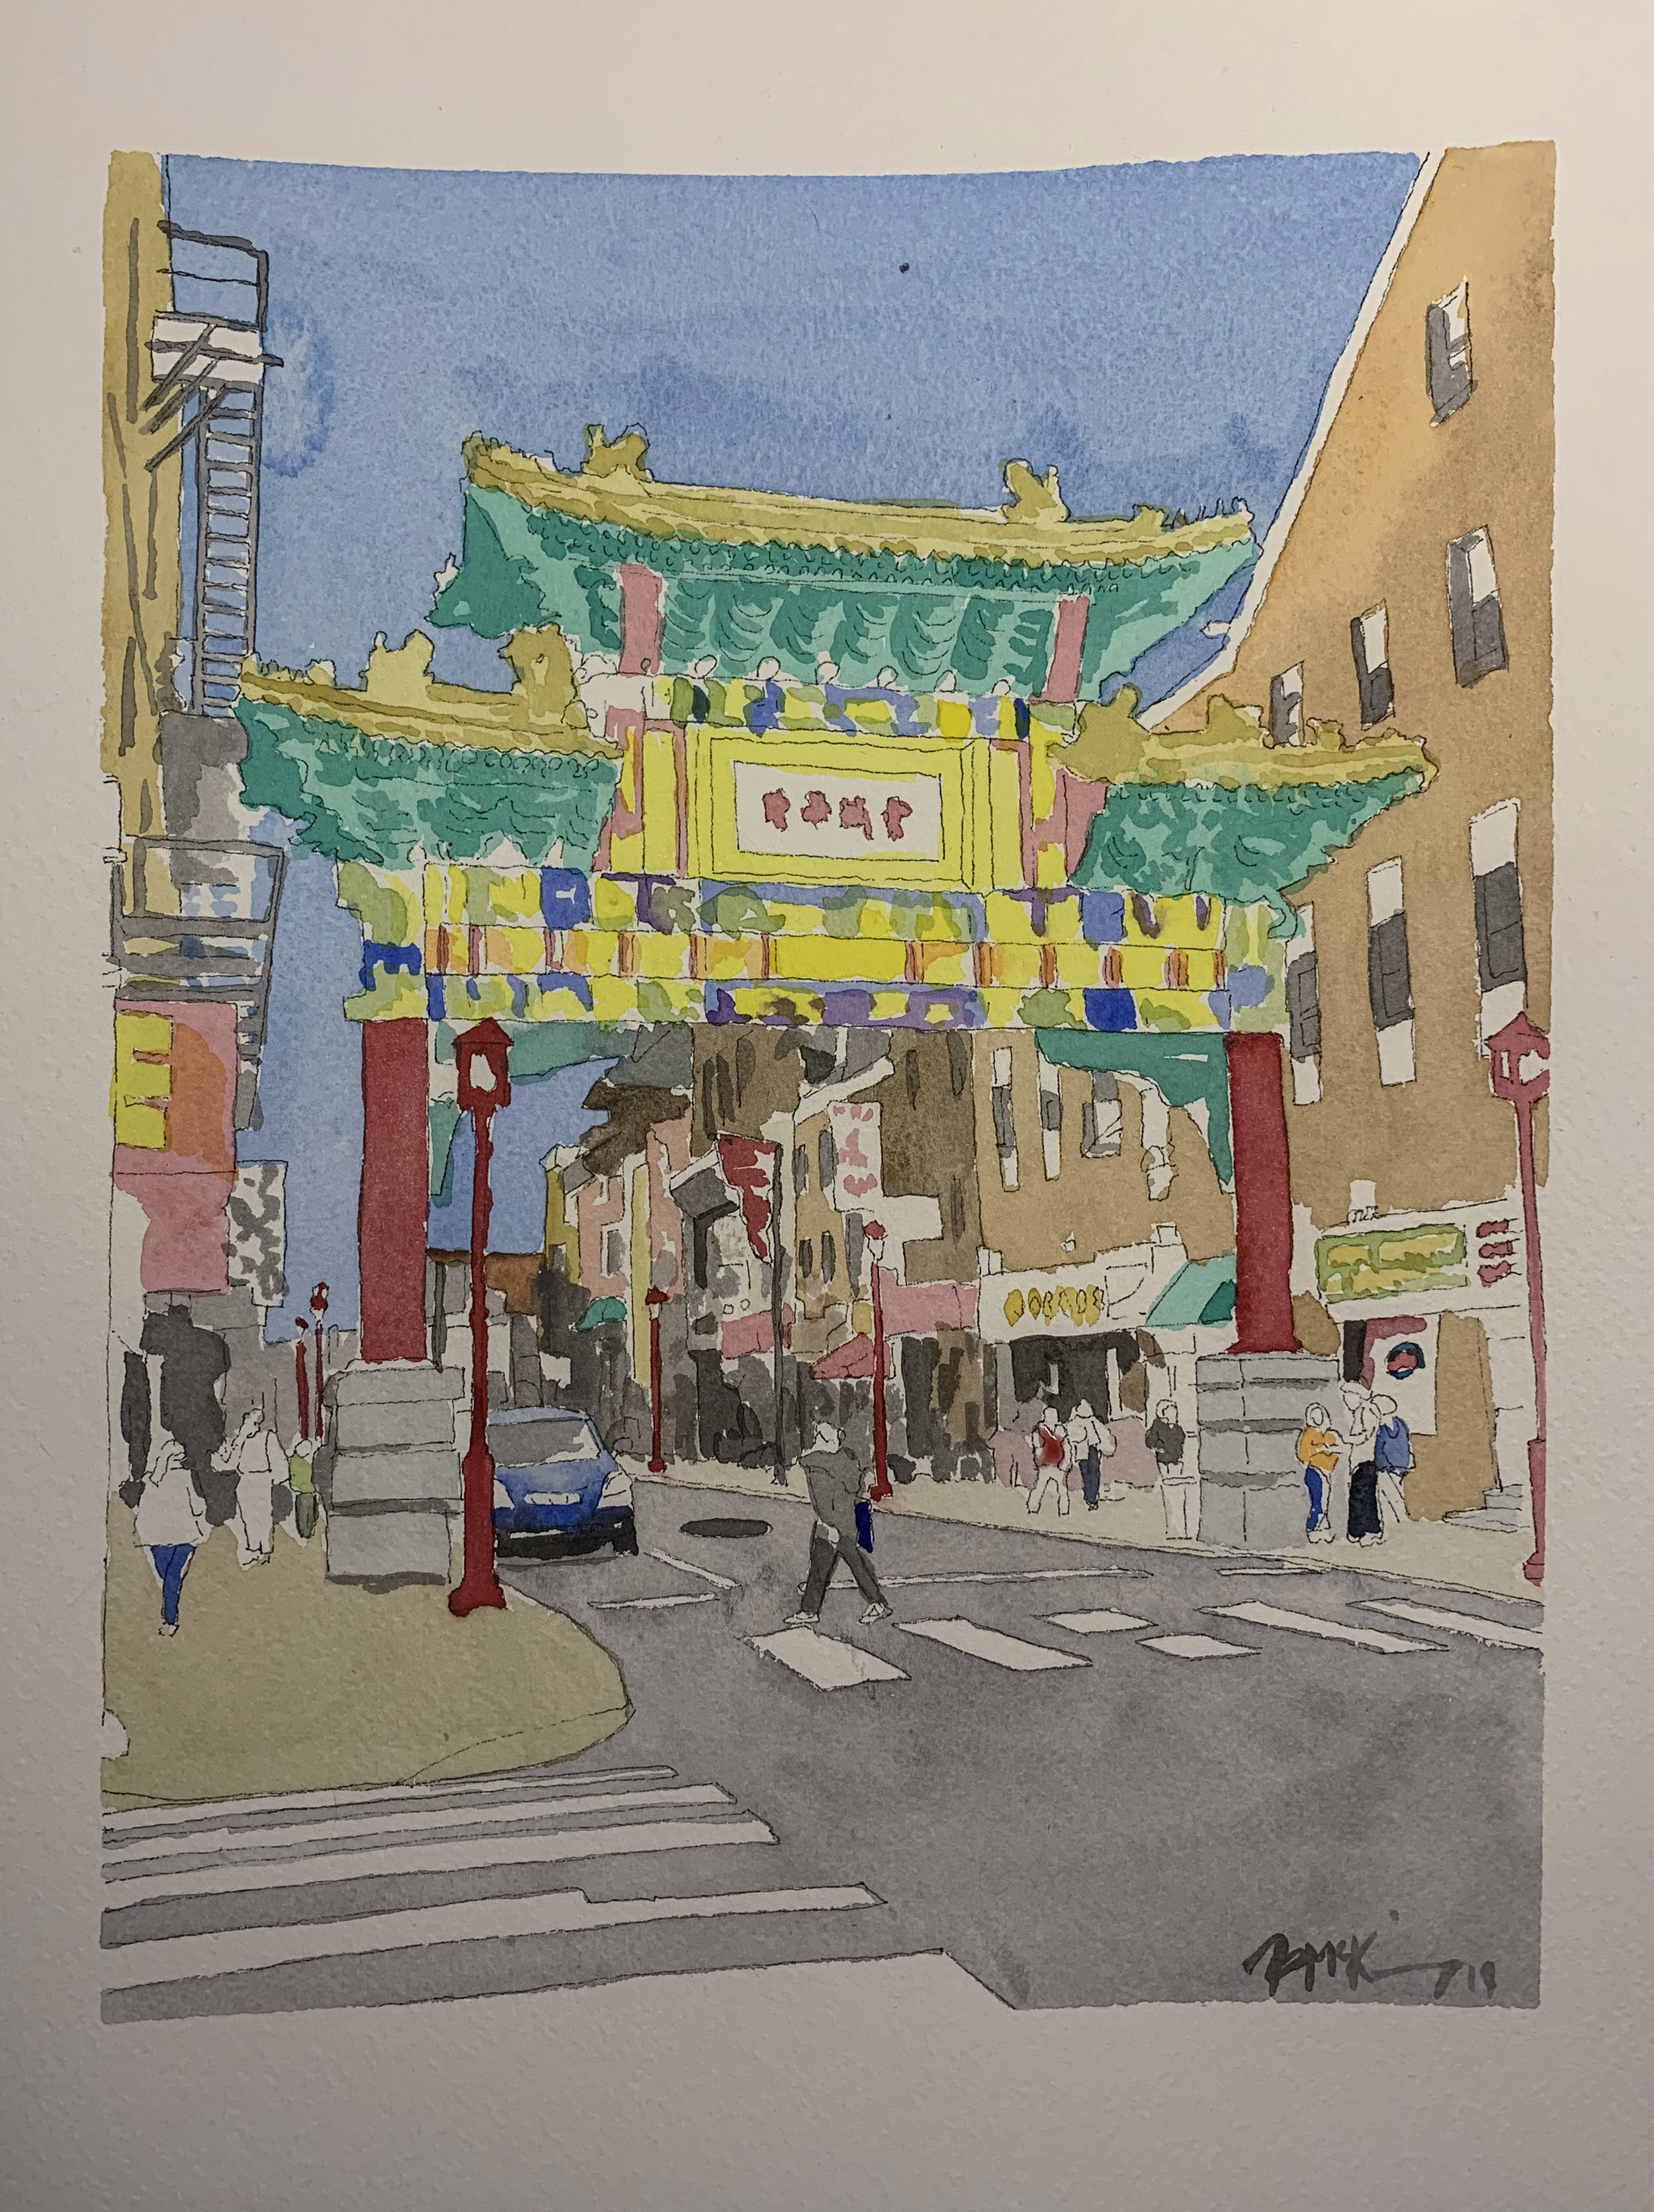 Chinatown Gate on Arch St, 9x12 inches, watercolor, ink wash and pen on 140lb, Feb 2019